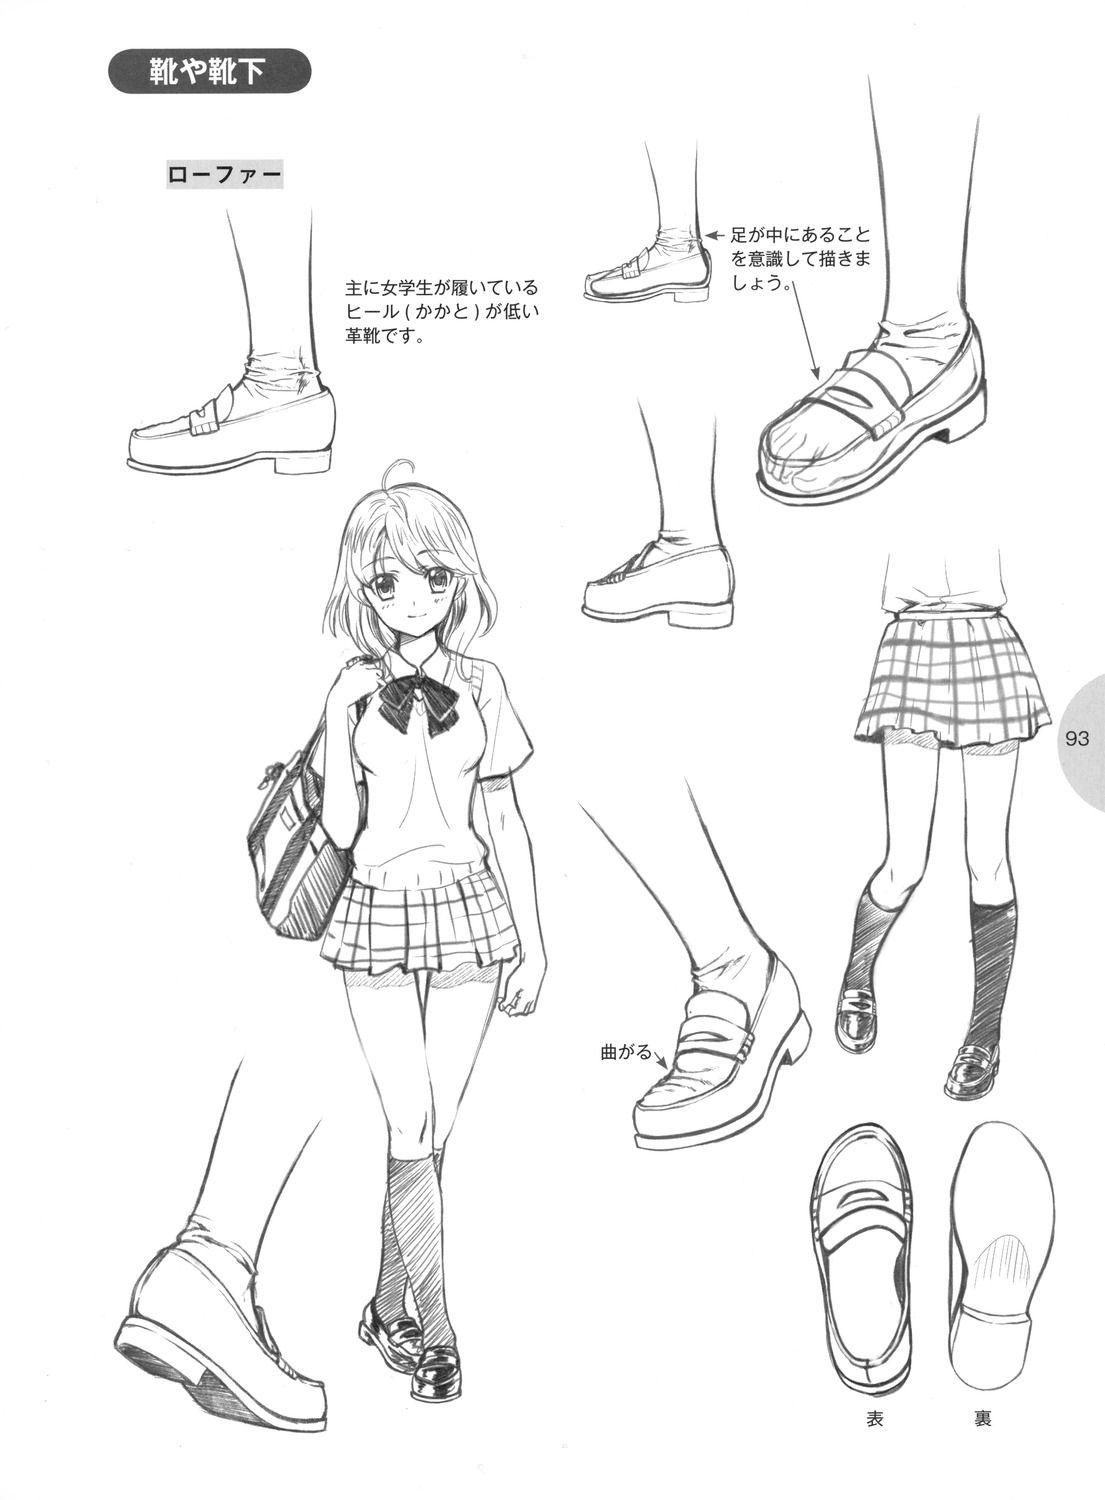 Drawing Feet And Shoes From Ȑ�えキャラクターの描き方 (how To Draw Moe Characters